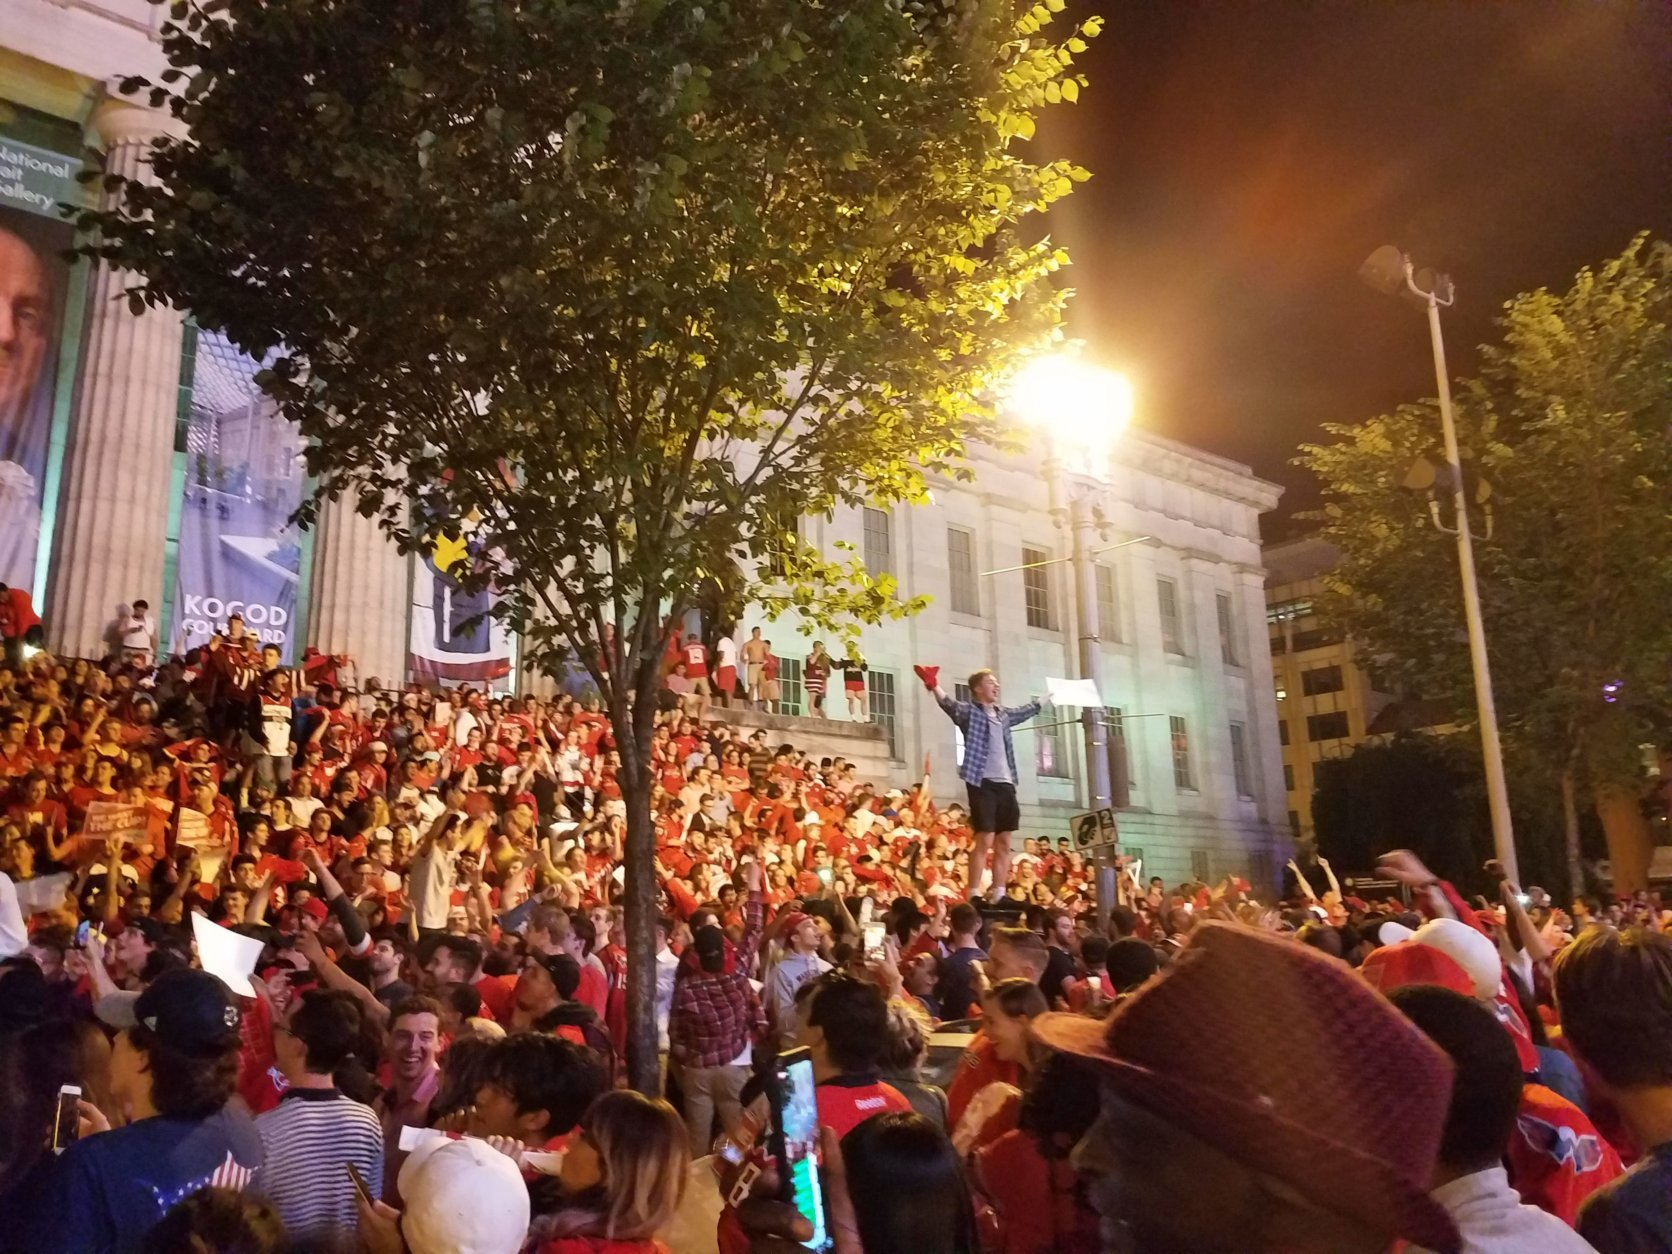 Fans gather in downtown D.C. after the Capitals beat Tampa Bay in Game 7 of the NHL Eastern Conference Finals Wednesday. Metro Board Chairman Jack Evans is hopeful that someone will fund late-night service during Stanley Cup Finals home games. (WTOP/Lisa Weiner)